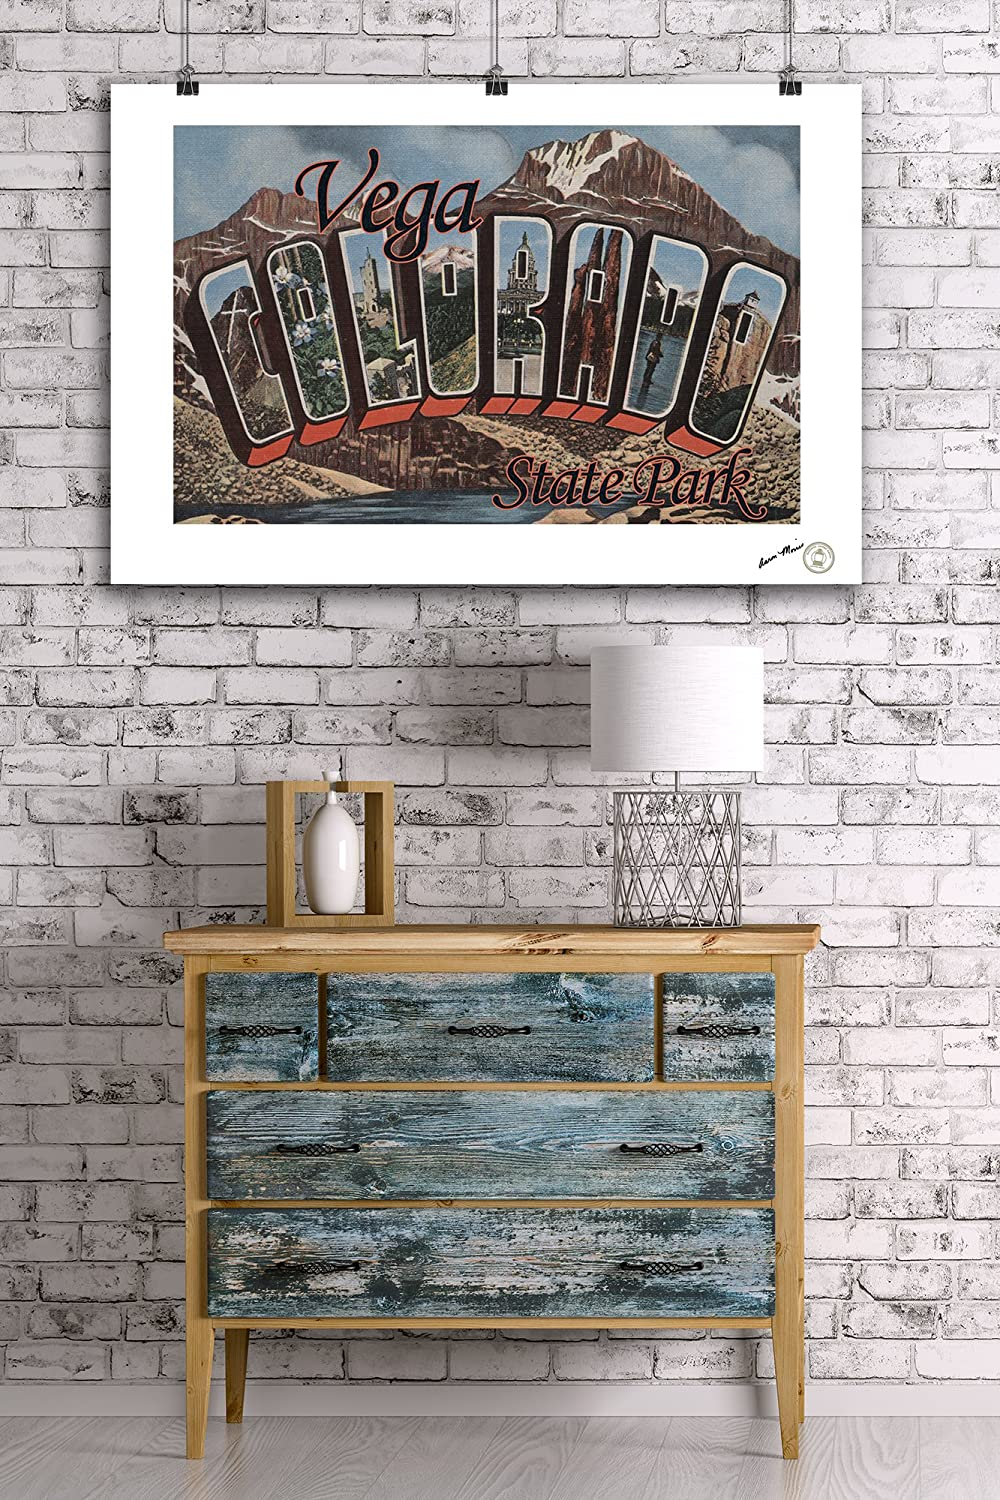 Vega State Park Colorado 24x36 Giclee Gallery Print, Wall Decor Travel Poster Large Letter Scenes